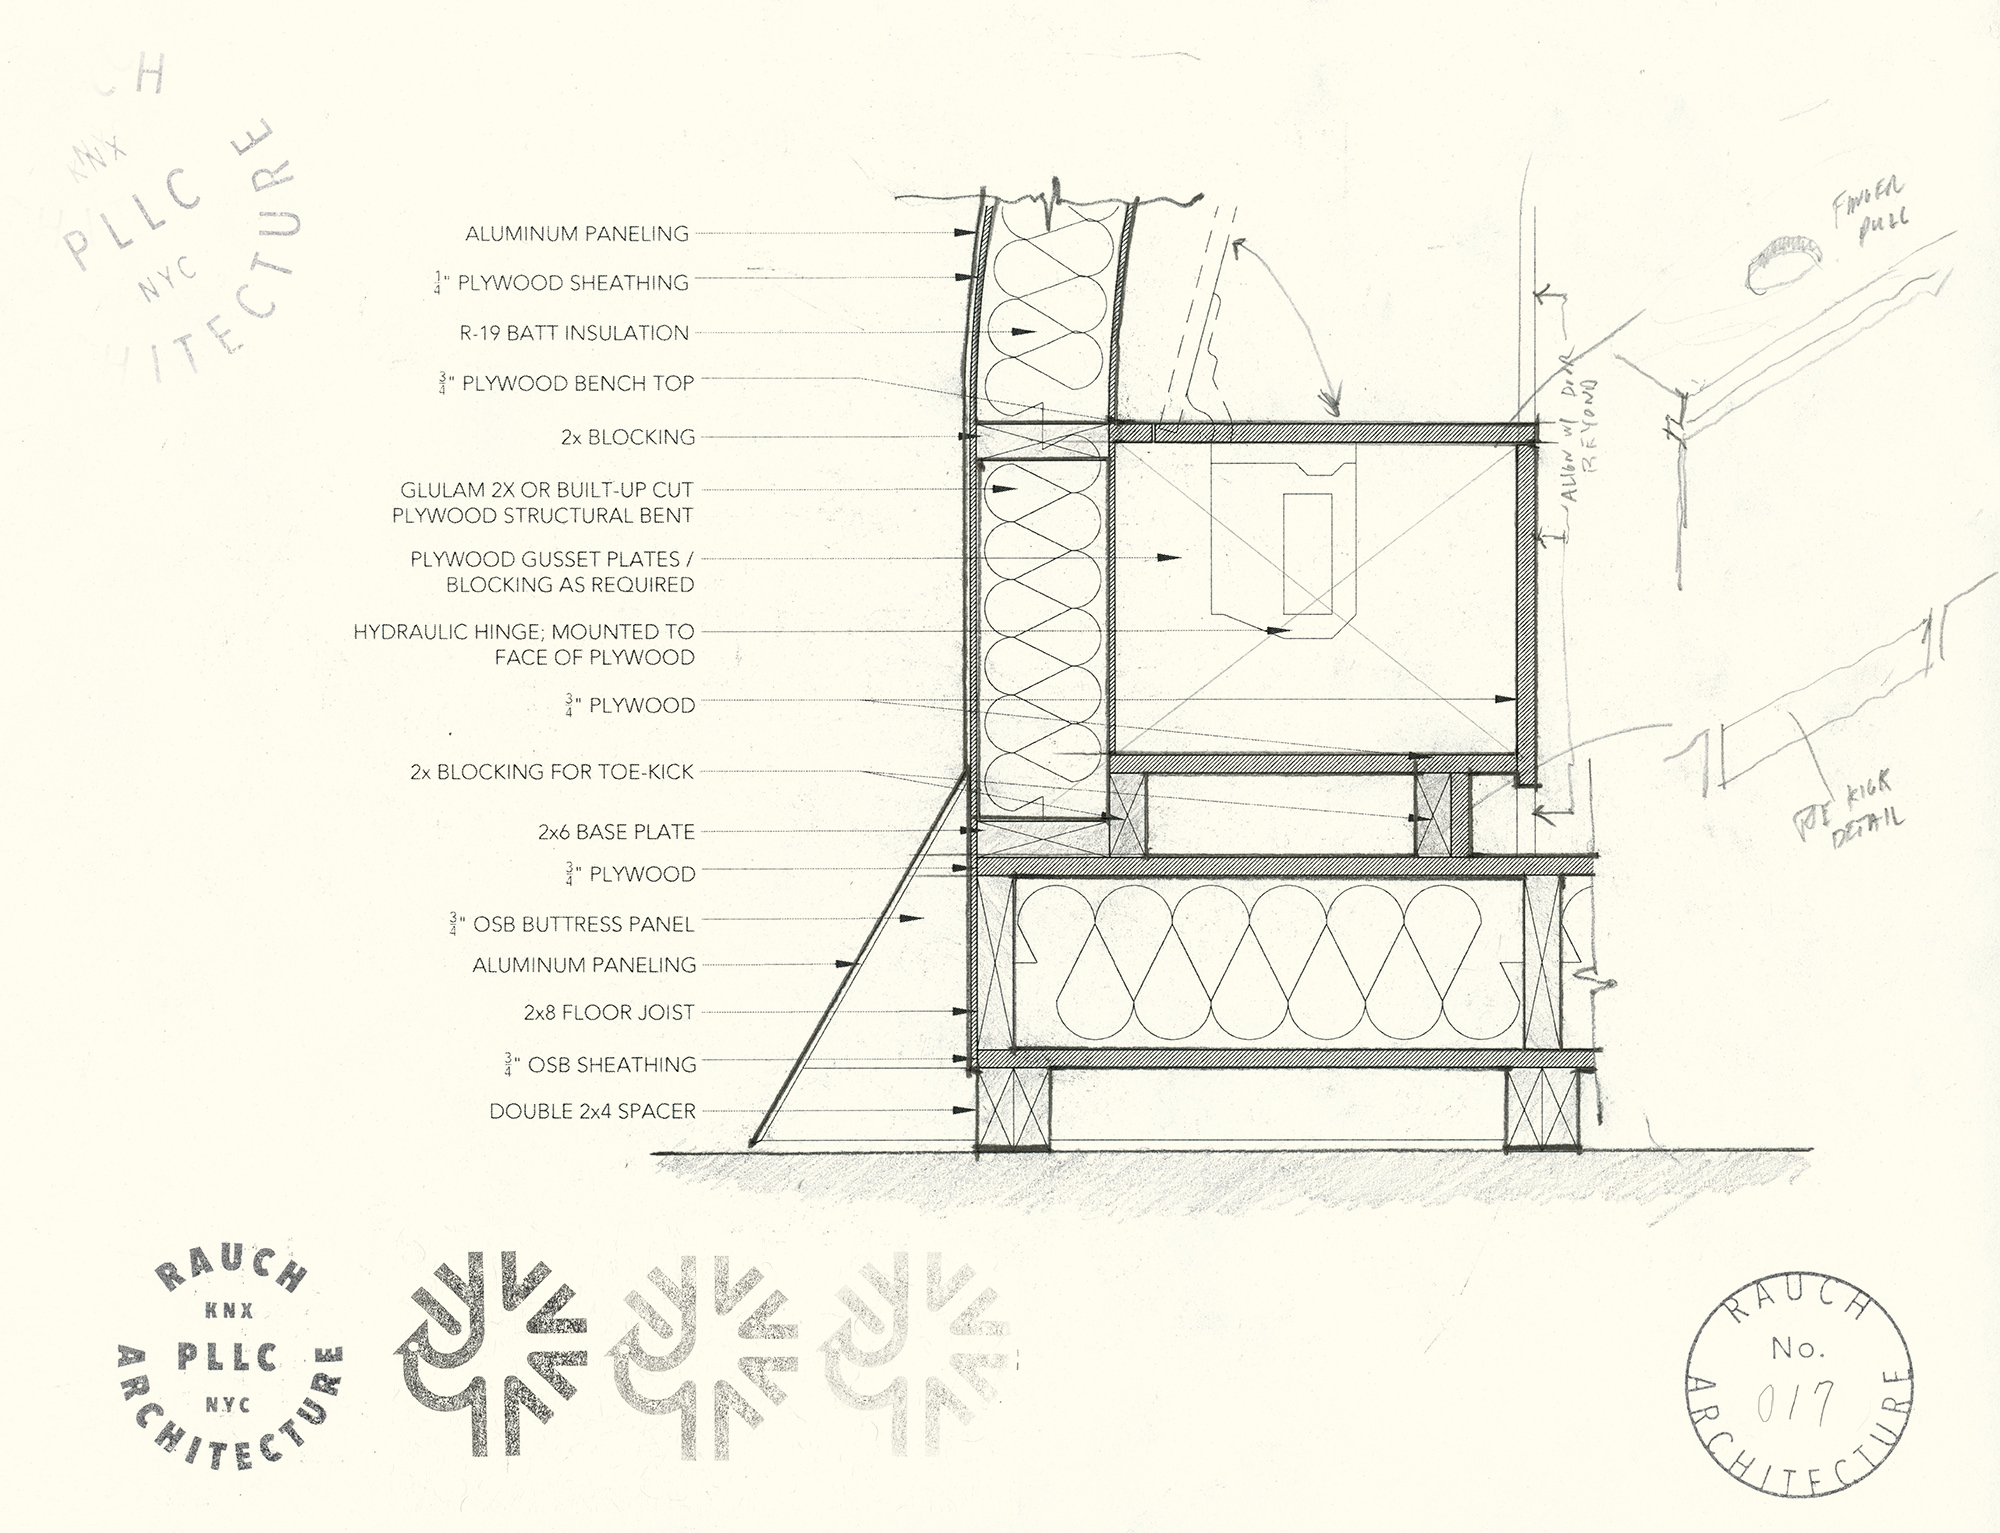 017_PPX_Detail_Sketch-1